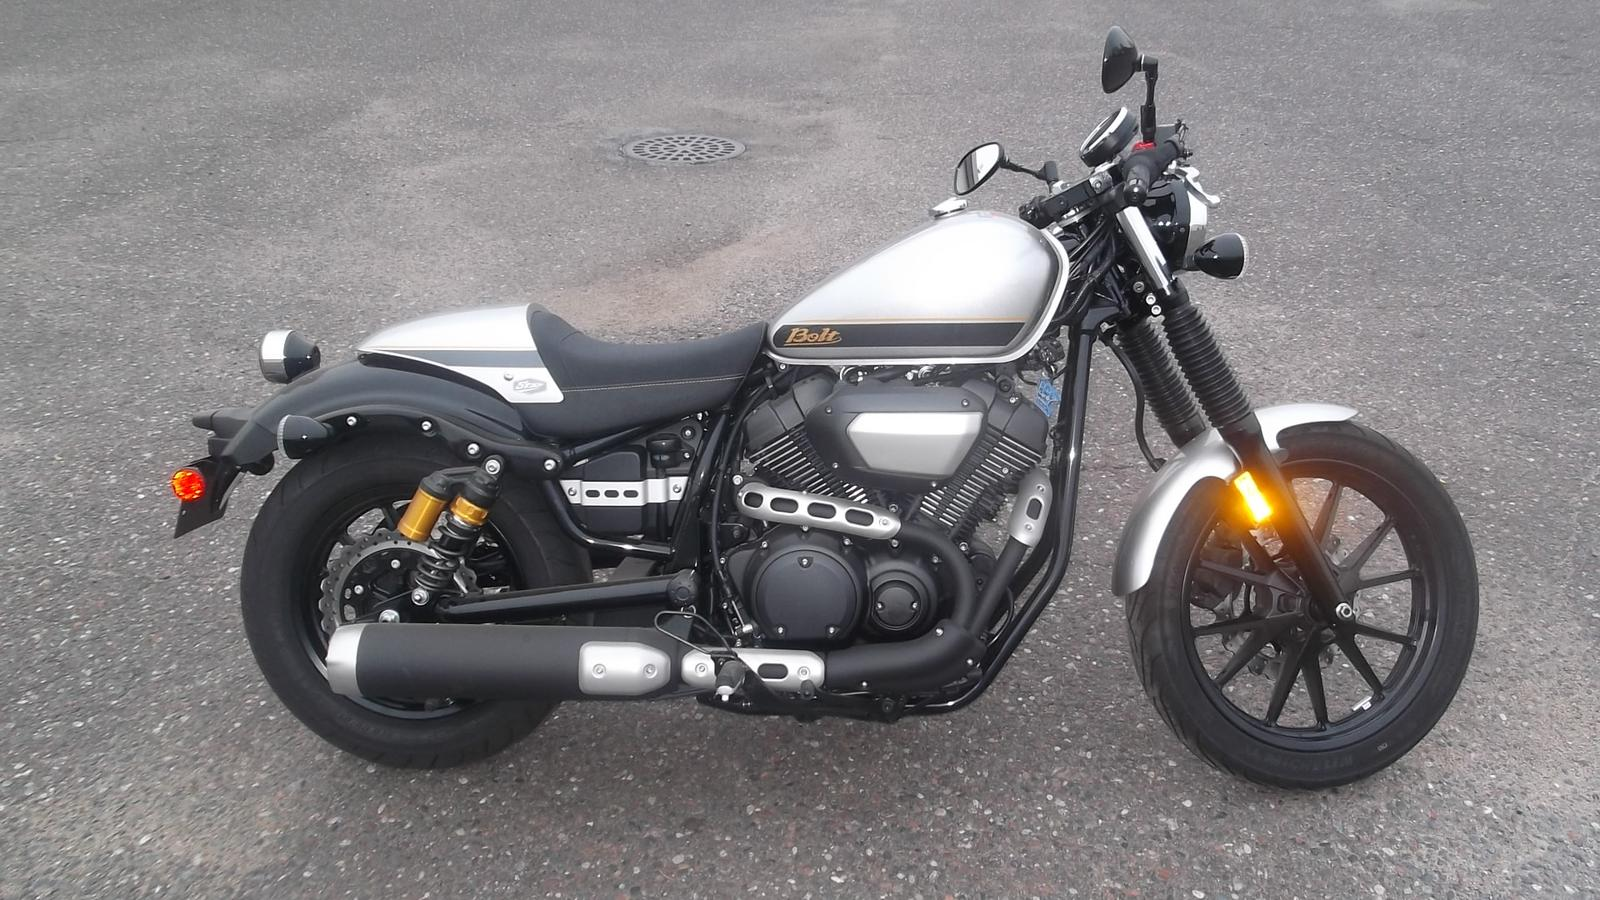 2015 Yamaha Bolt C-spec for sale in Cambridge, MN. Larson's Cycle ...